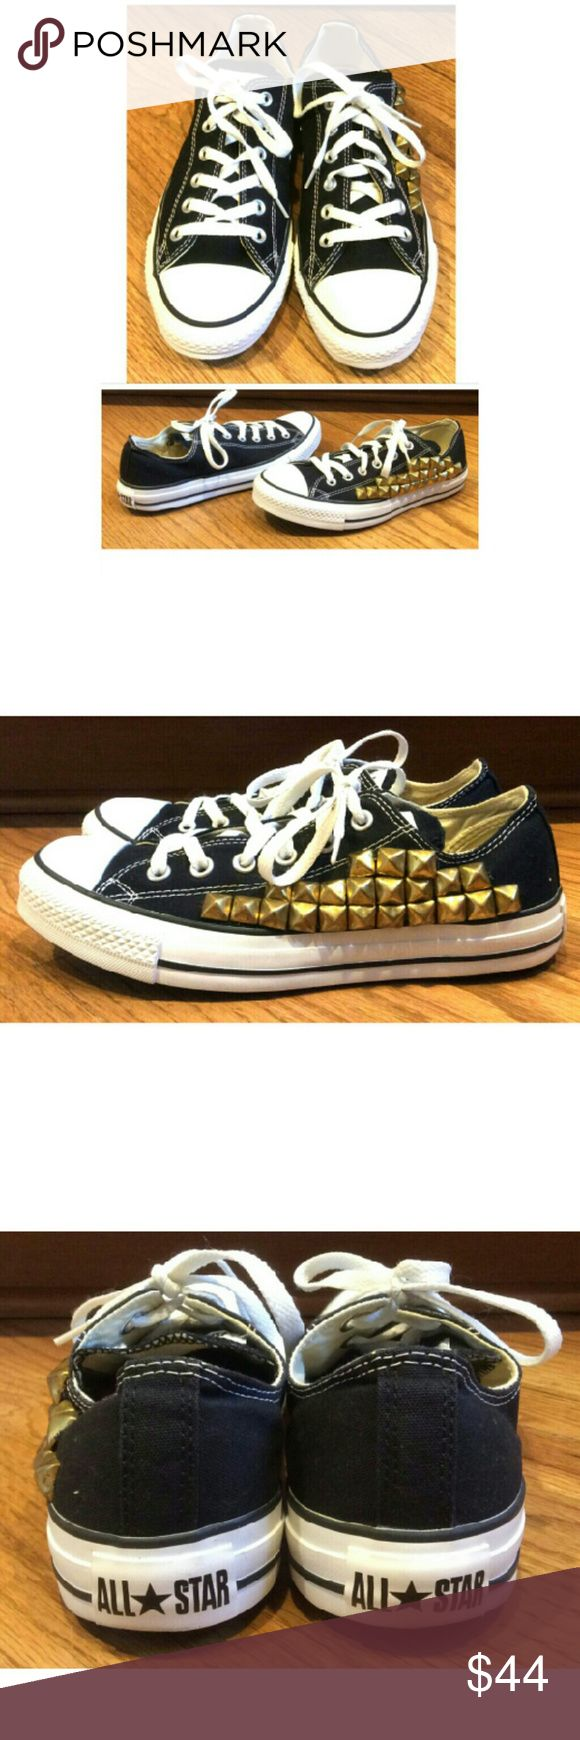 Walking dead converse shoes for sale -  New Studded Low Top Converse Sneakers